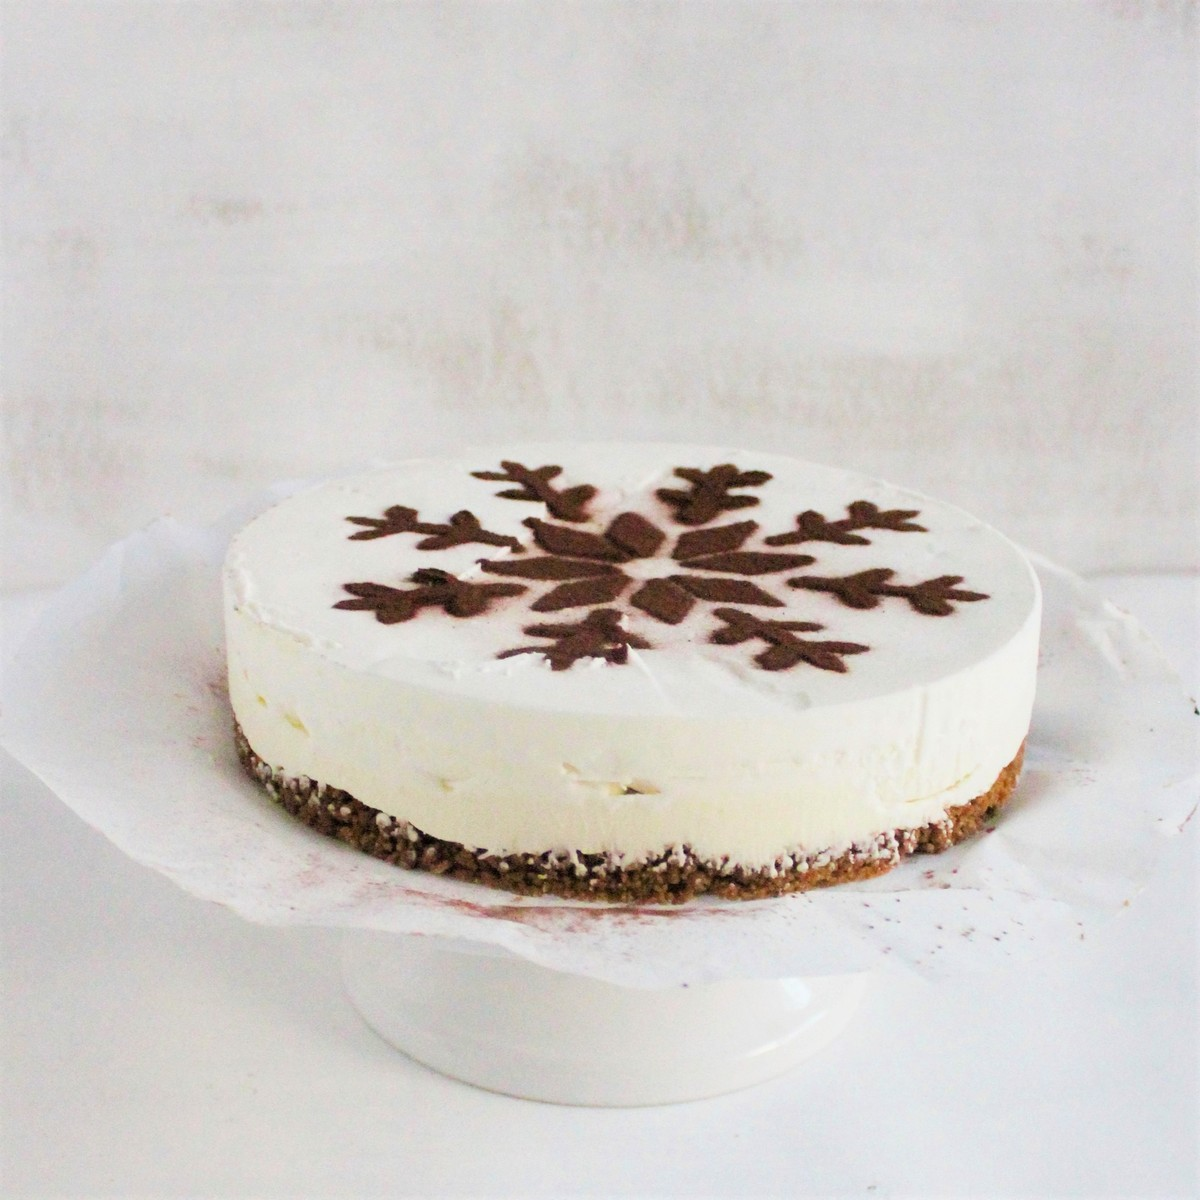 Ice cream pie made of chocolate and brownie 6-8p